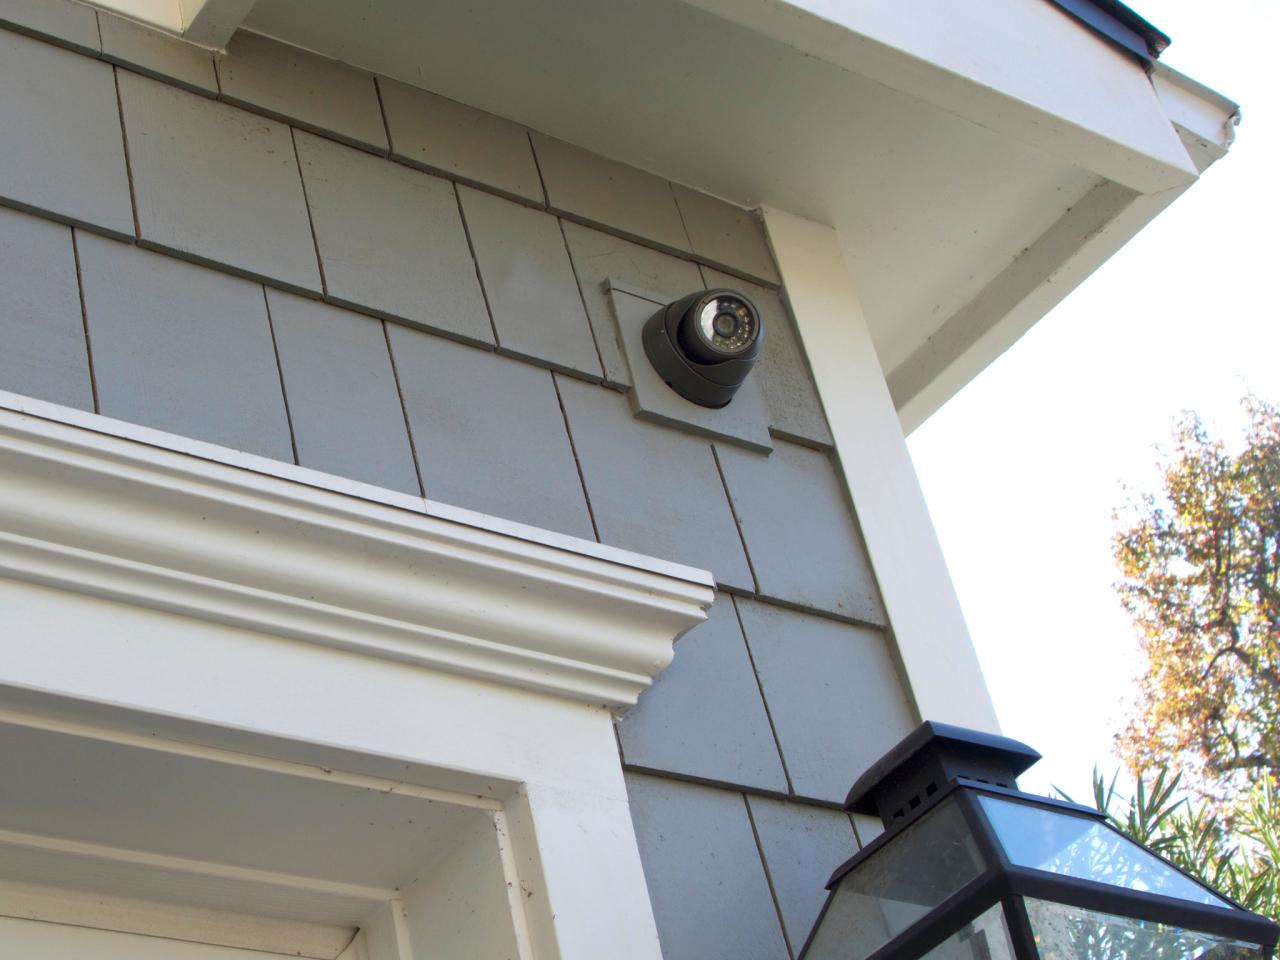 call upon your locksmith twickenham to secure your home